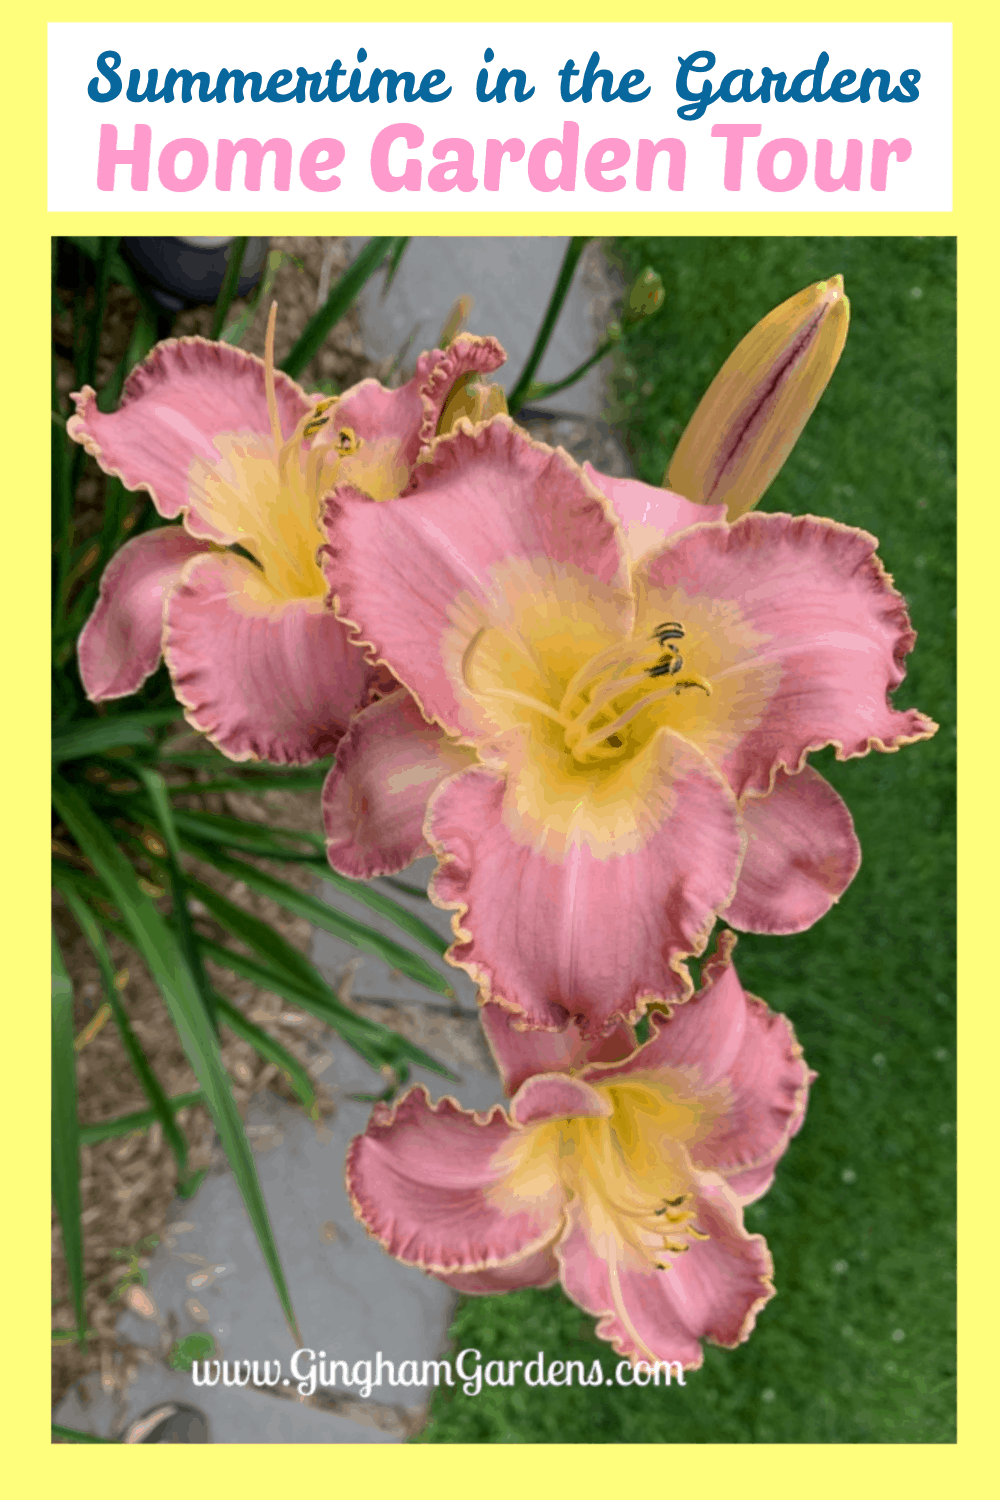 Image of Daylilies with text overlay - Summertime in the Gardens - Home Garden Tour